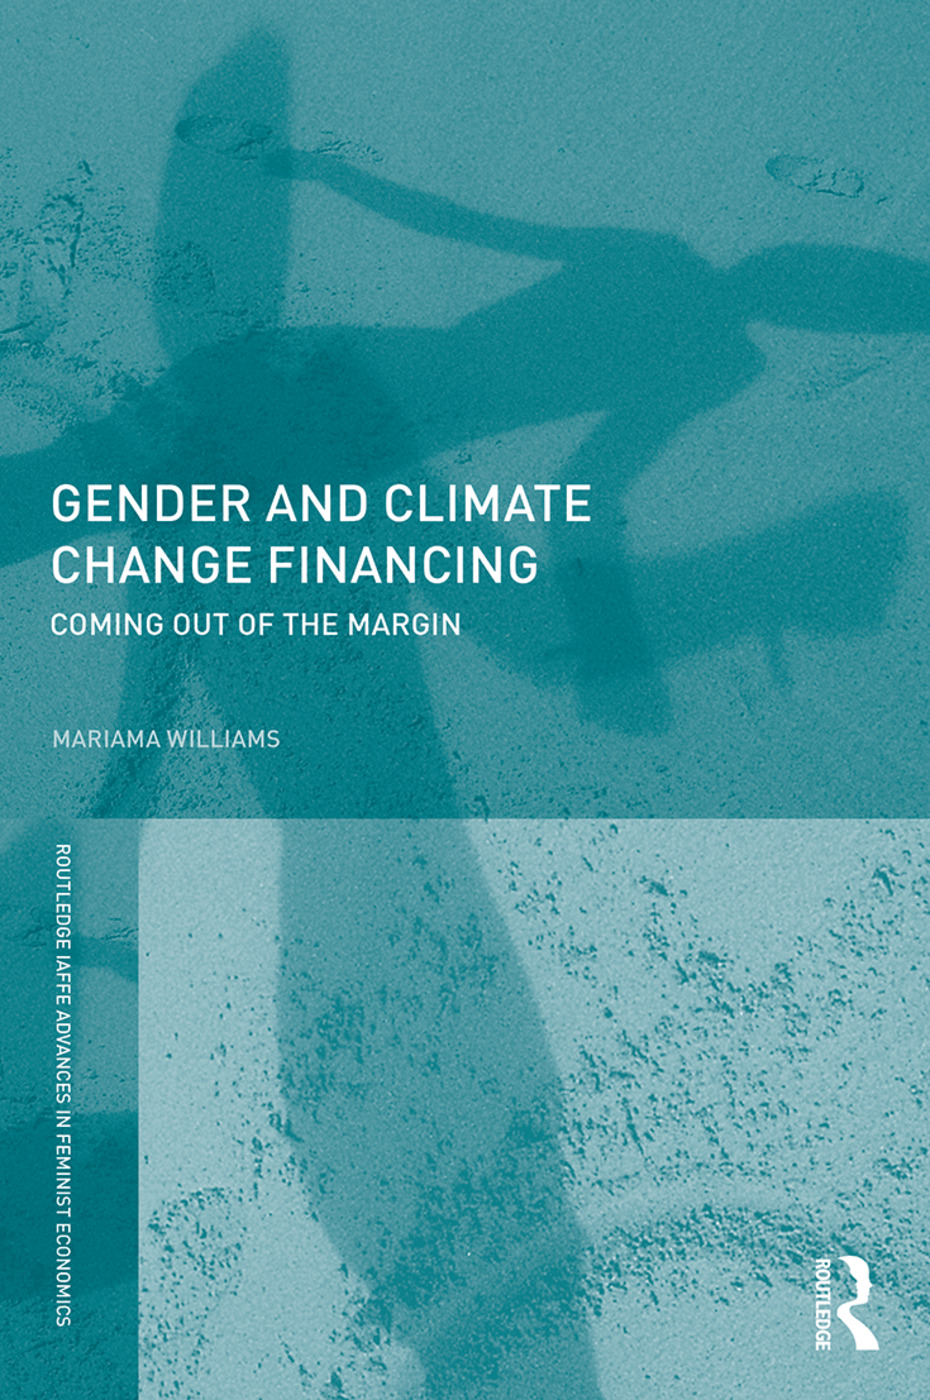 Gender and Climate Change Financing: Coming out of the margin book cover